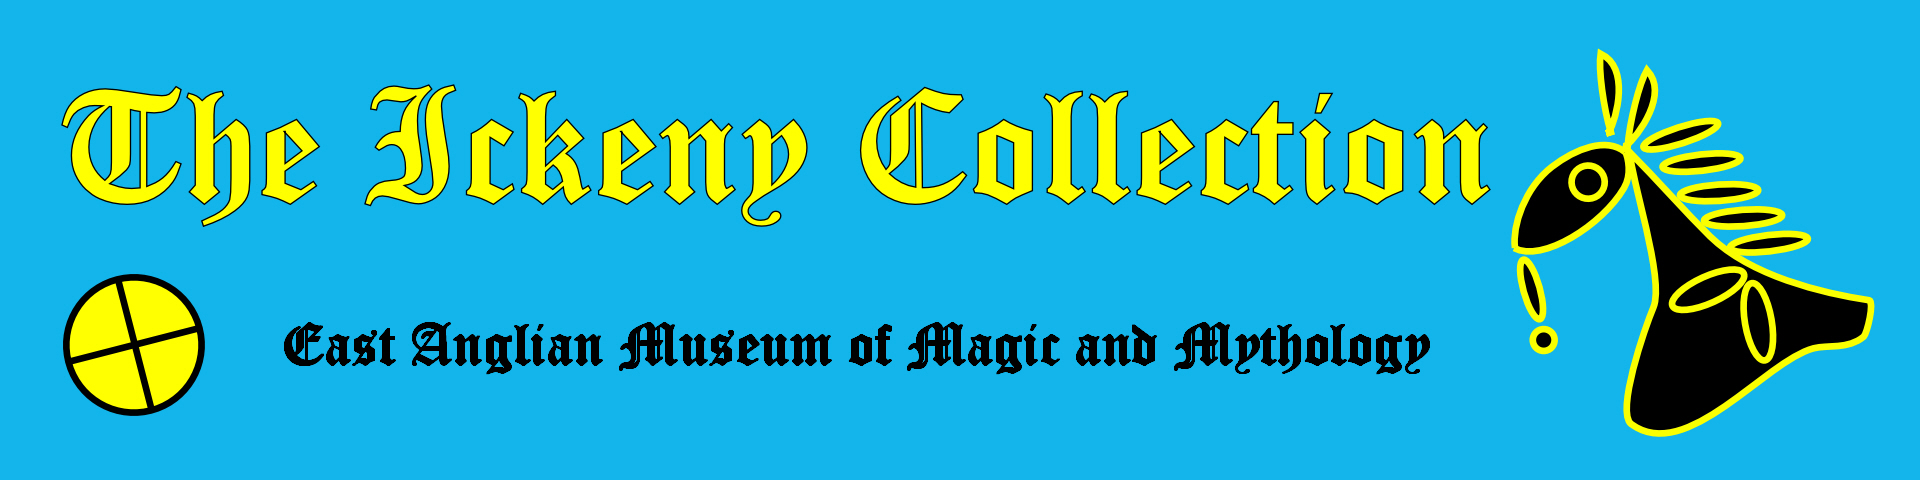 THe logo for The Ickeny Collection, East Anglian Museum of Magic and Mythology, forming a link to the Events page